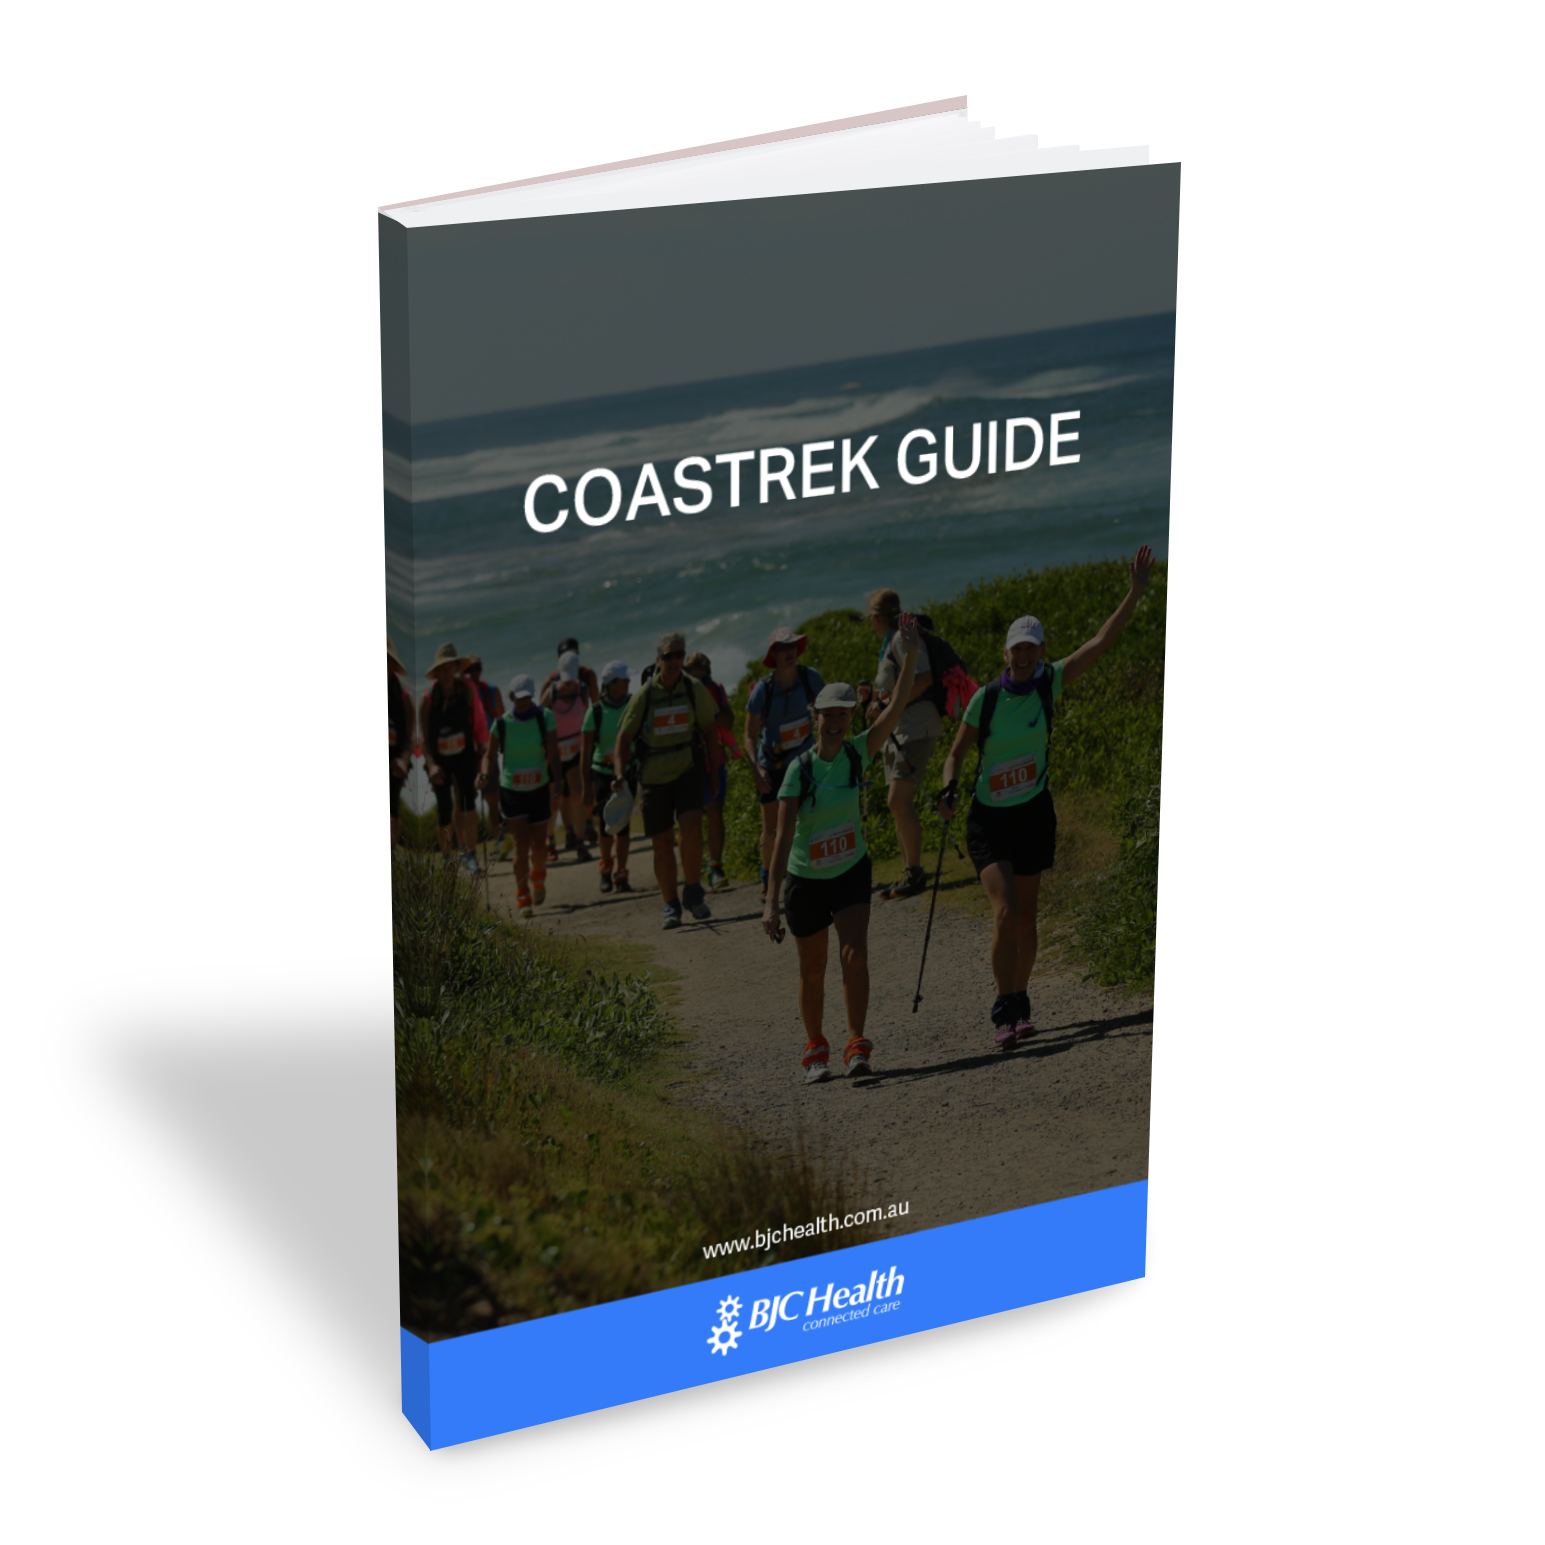 coastrek guide book.png